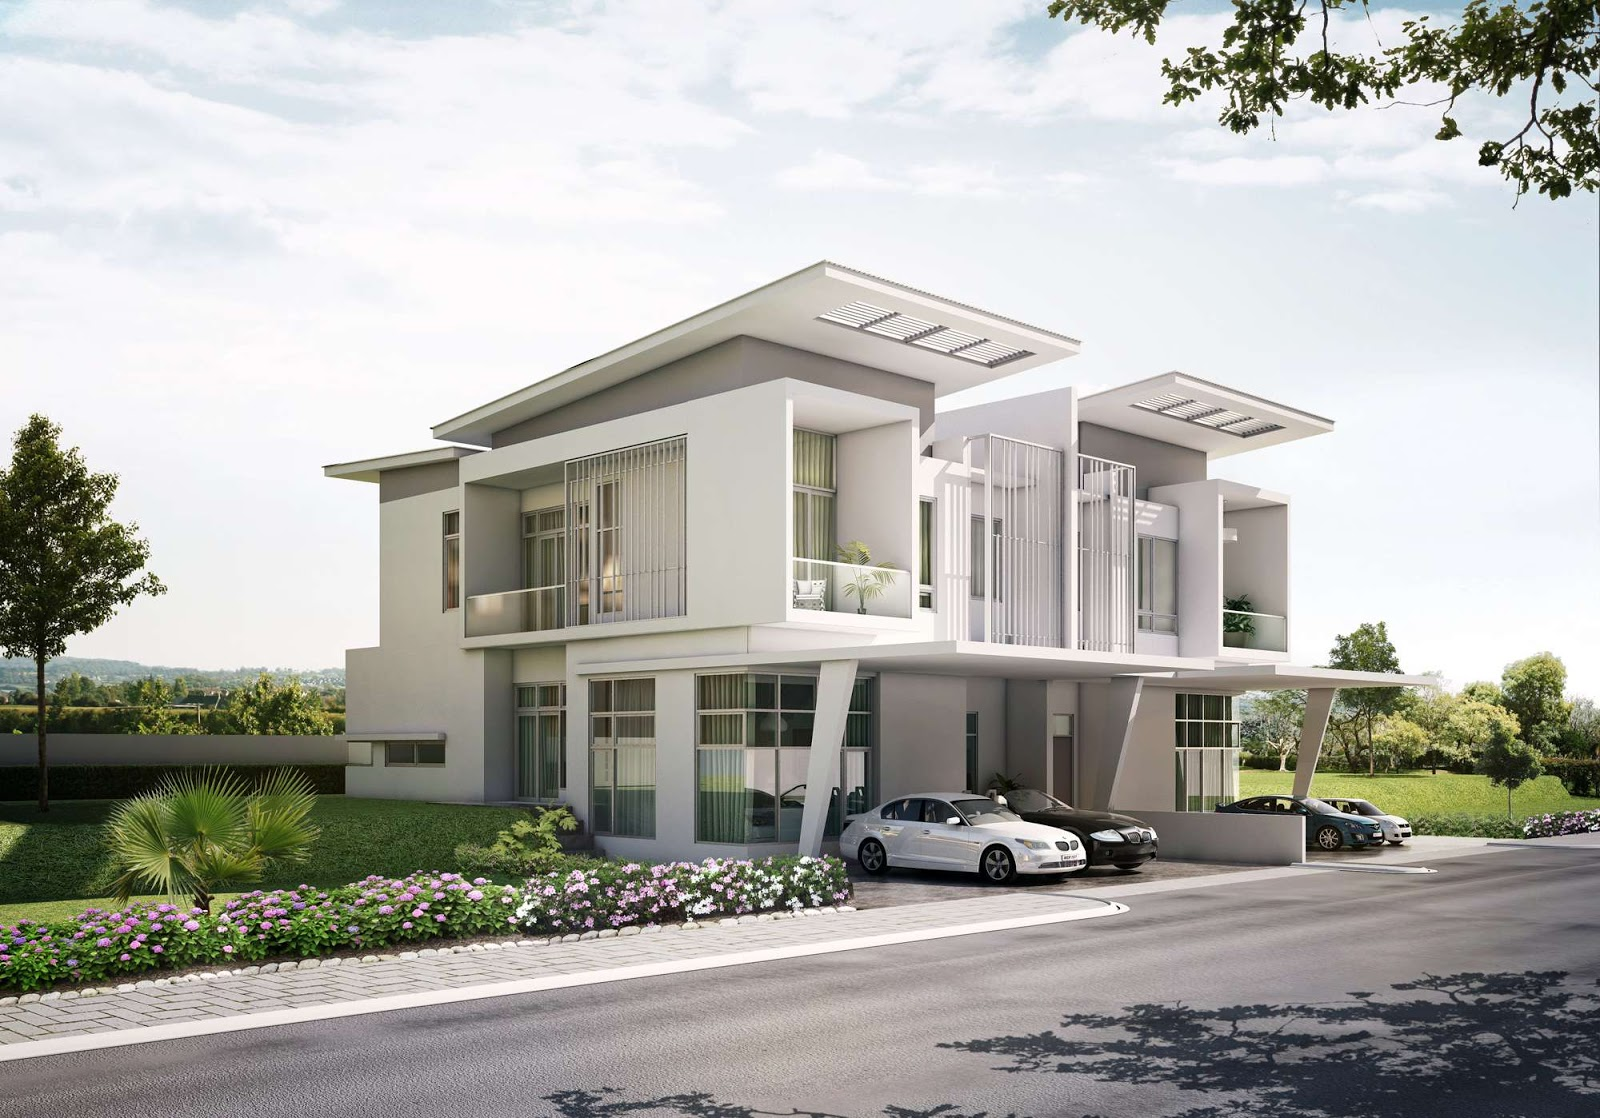 New home designs latest singapore modern homes exterior for Latest design house plan